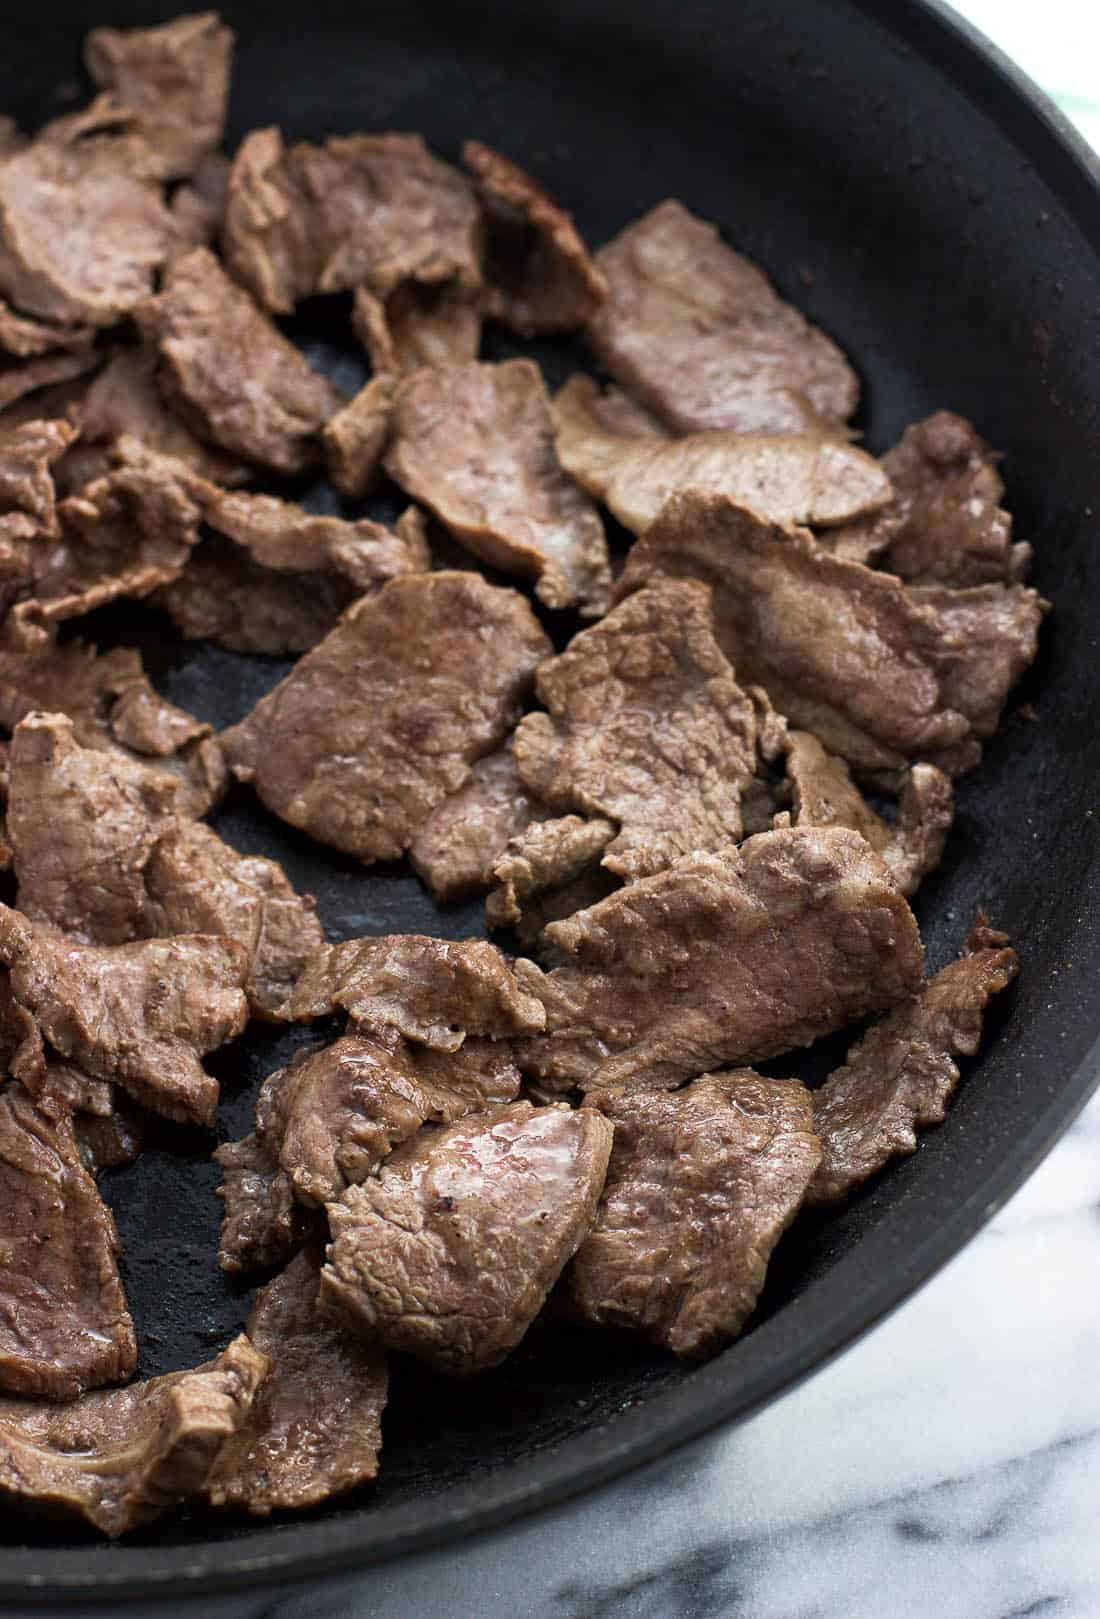 Cooked flank steak strips in a skillet